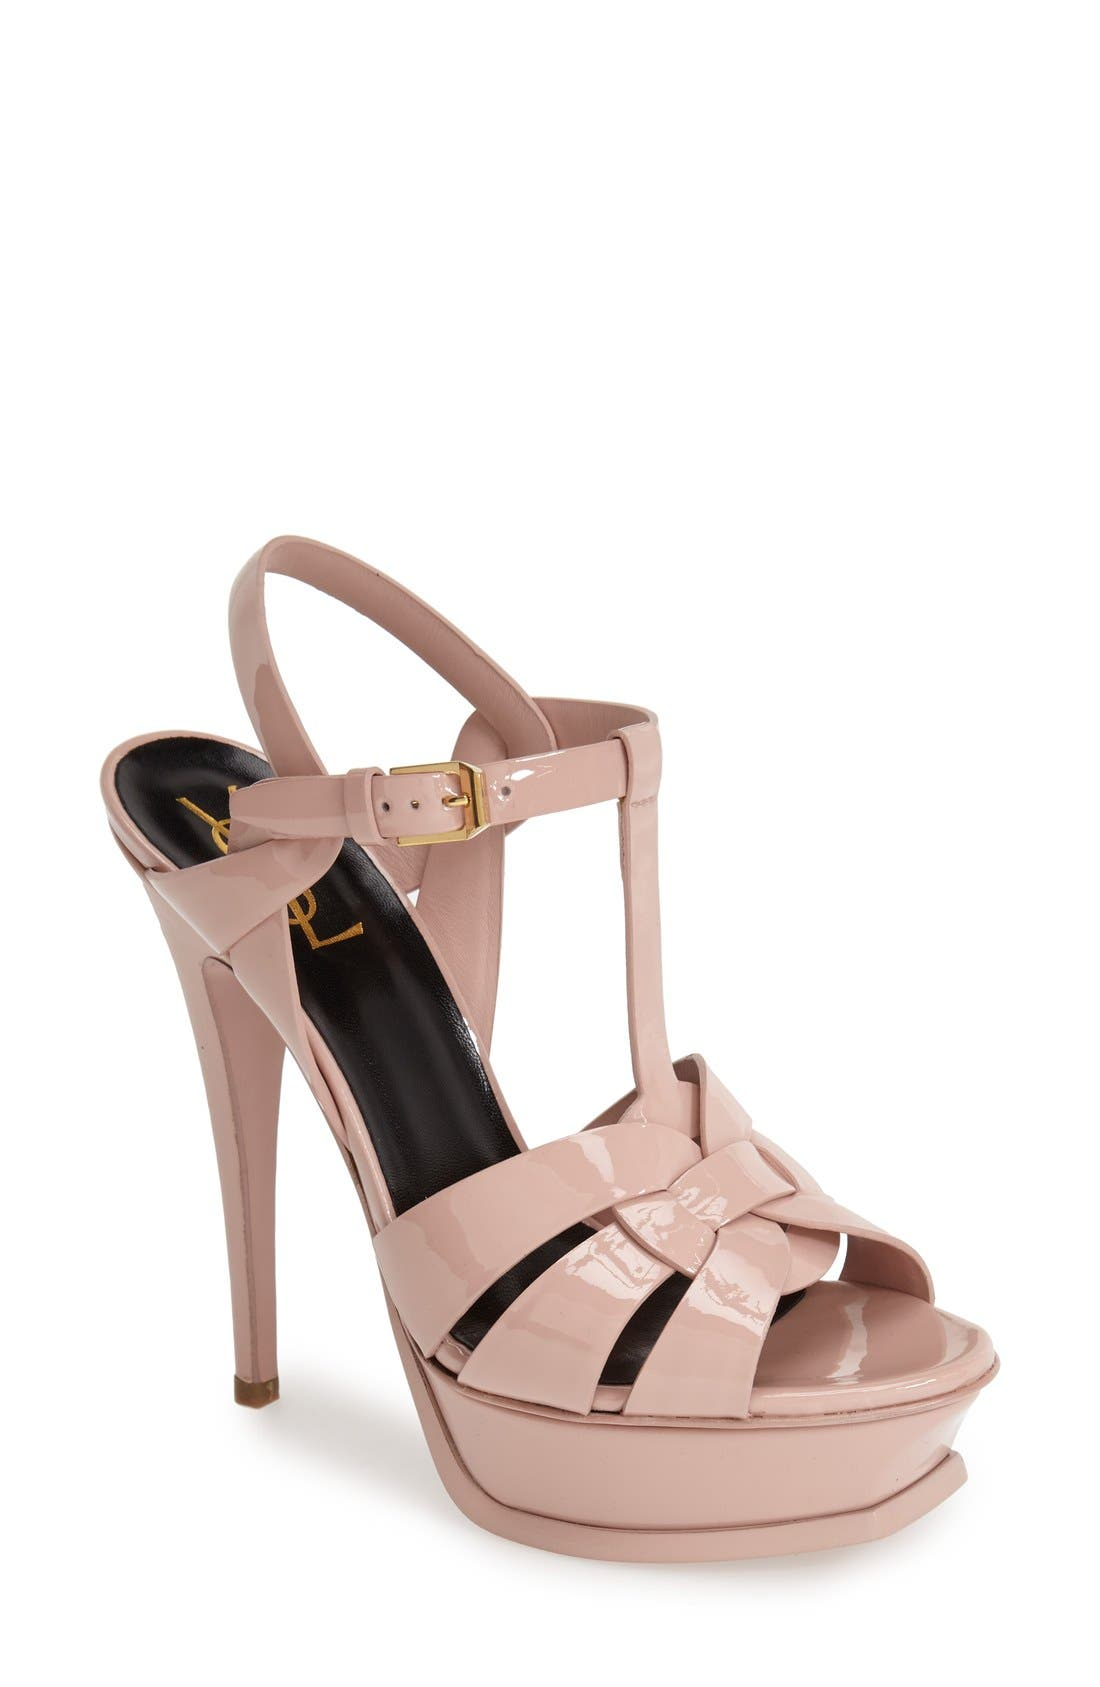 Saint Laurent Tribute T-Strap Platform Sandal (Women)